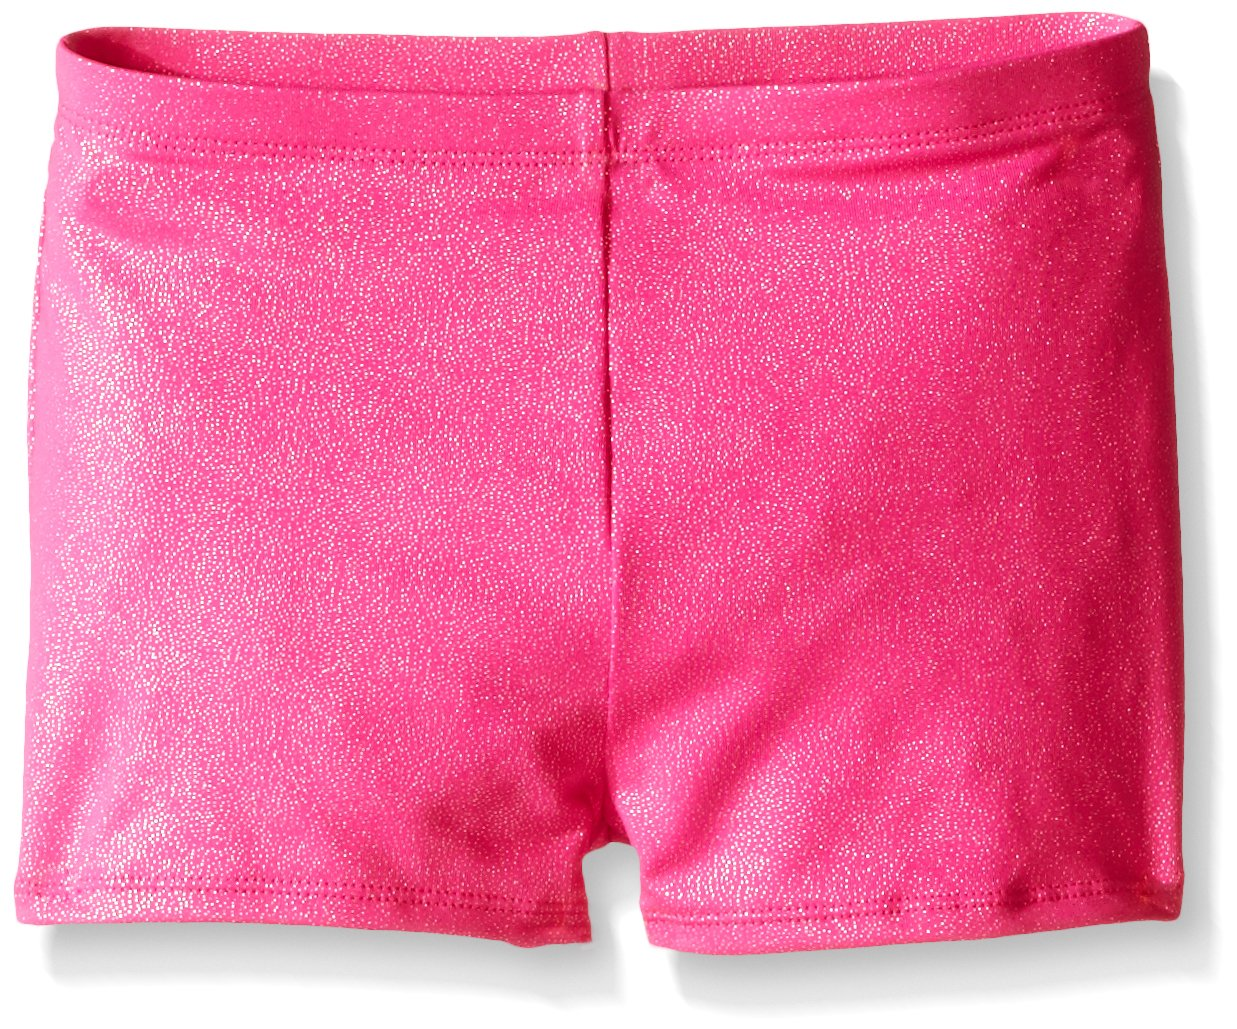 Jacques Moret Little Girls' Gymnastics Micro Short, Pizzazz Pink, Small